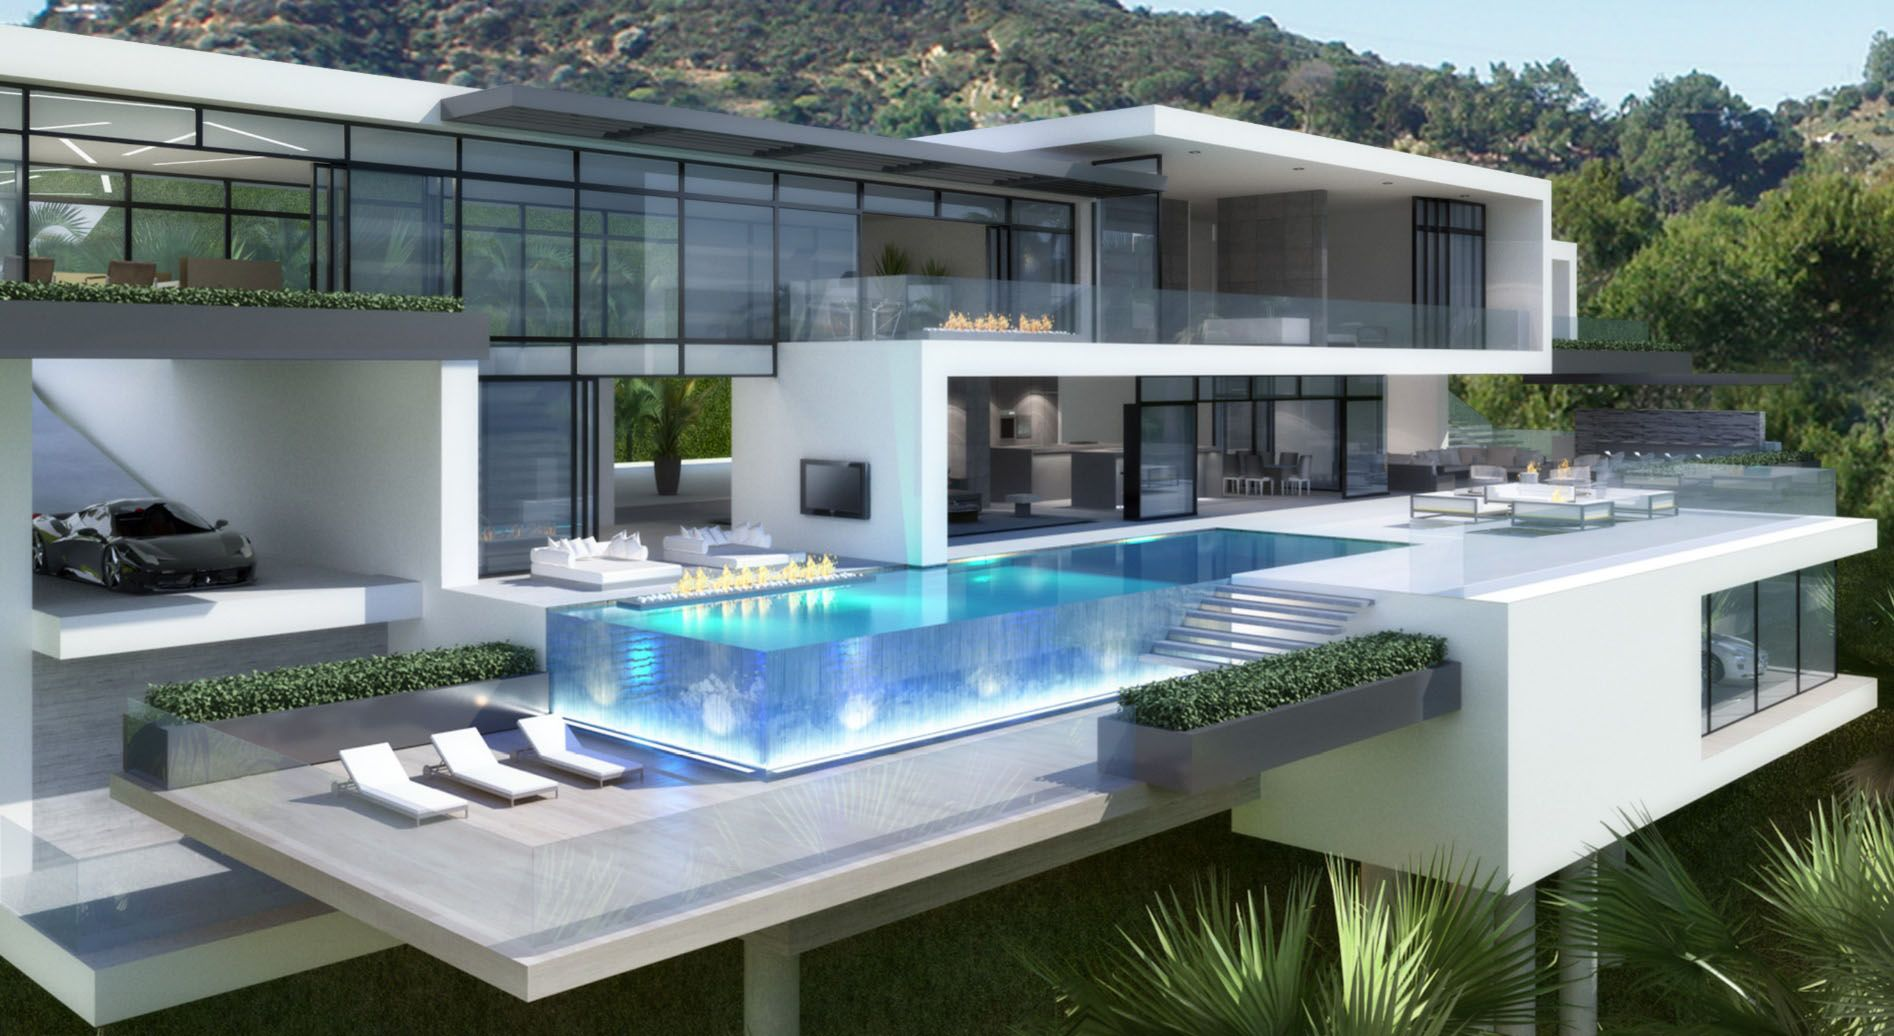 Fascinating Starlight Mansion Home Plans In White Color Featuring Terrace With Lounge Chair Swimming Pool G Big Modern Houses Modern Mansion Ultra Modern Homes